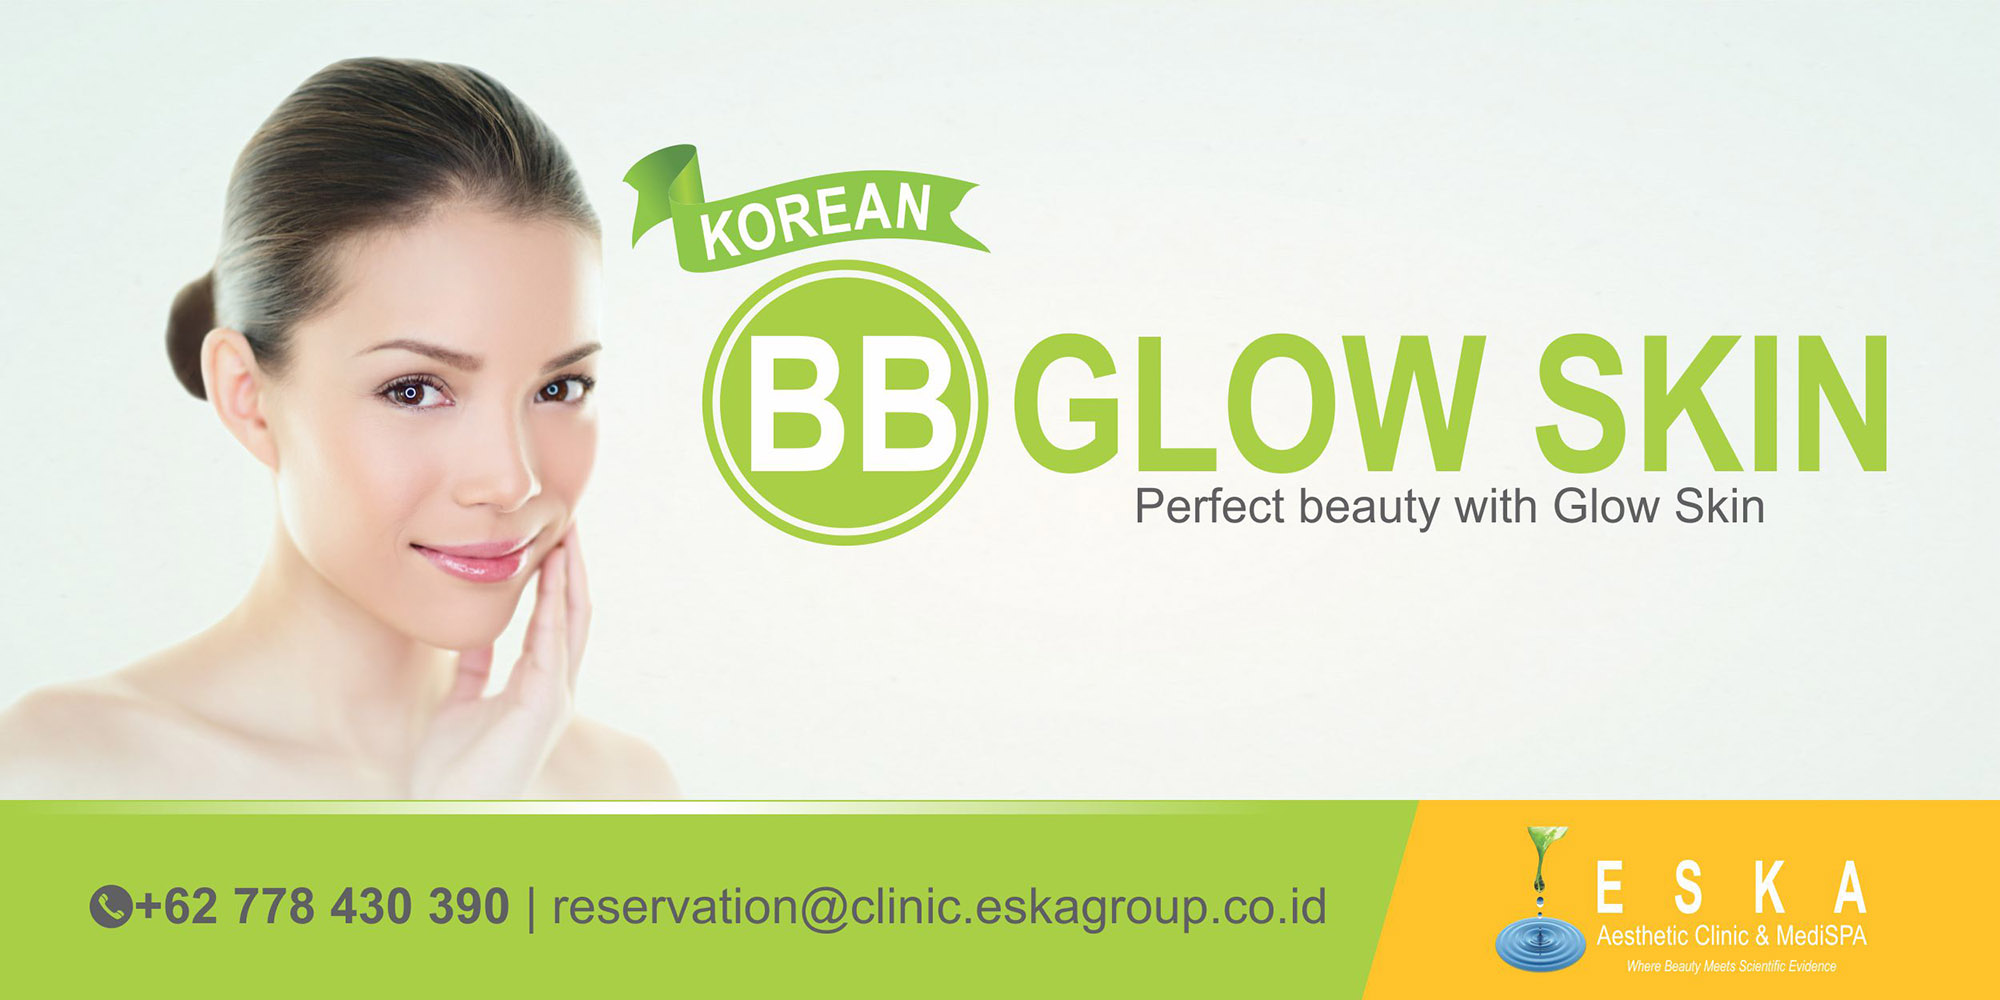 eska group batam eska clinic 1712-promo-korean-bb-glow-skin-slider